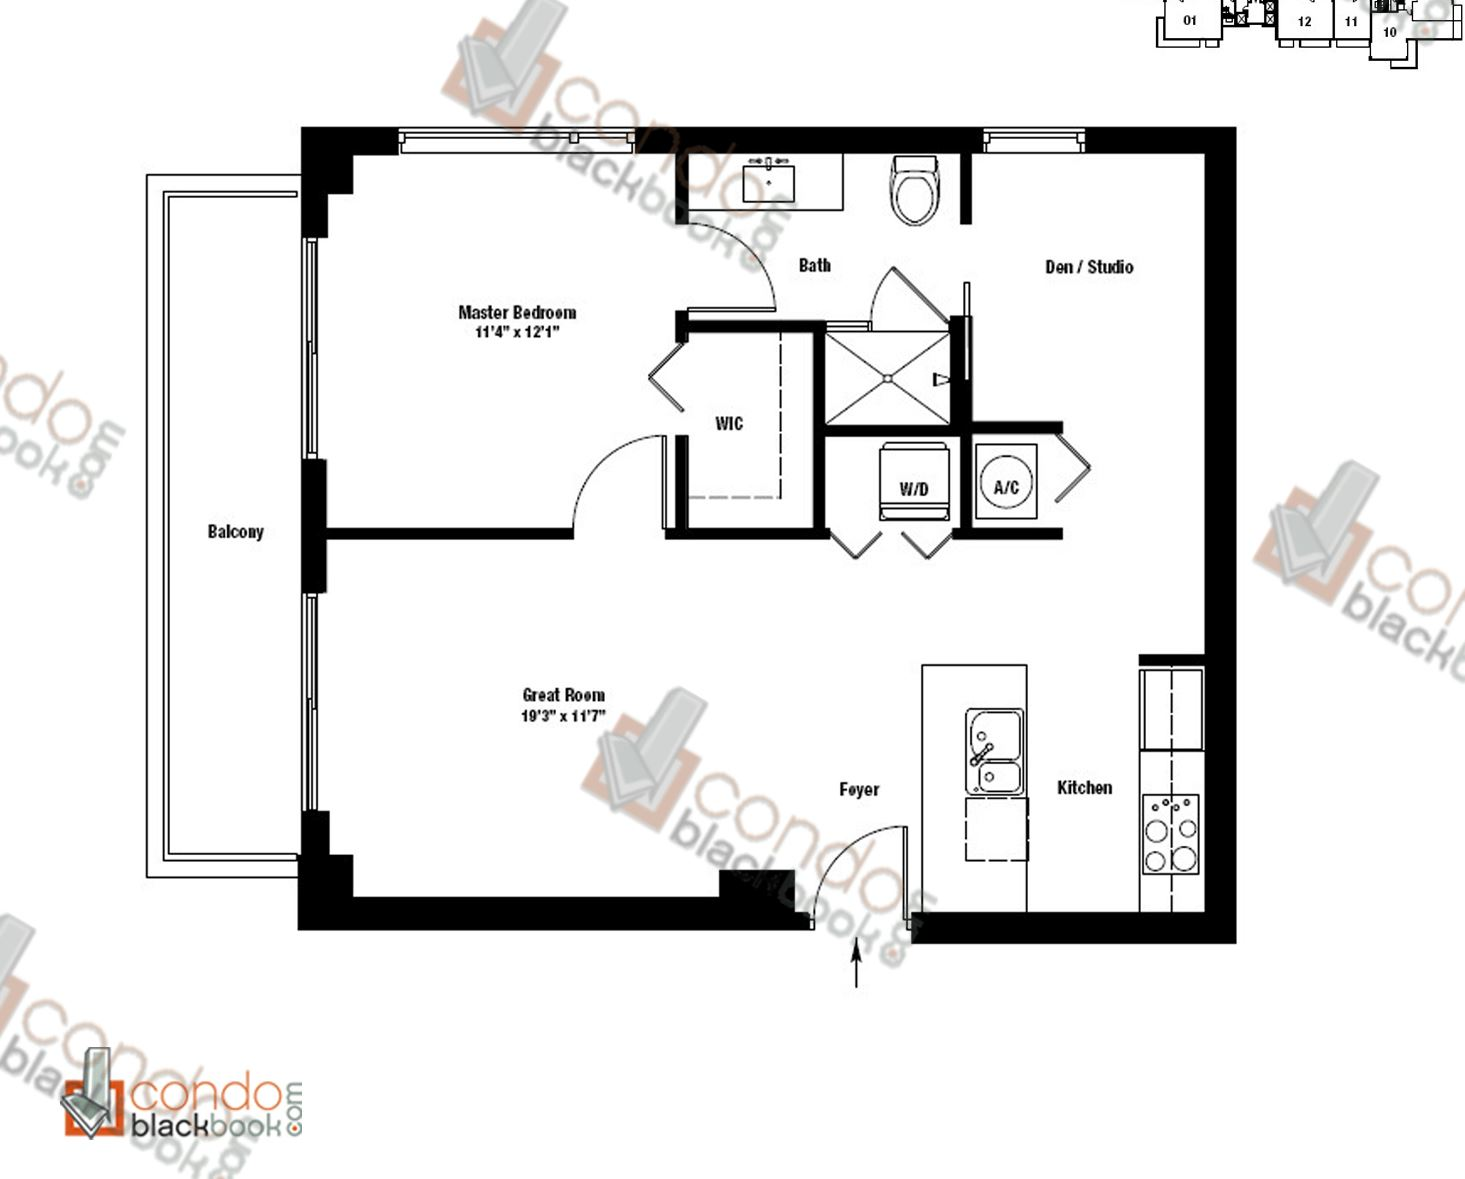 What Is Wic In Floor Plan What Is Wic In A Floor Plan